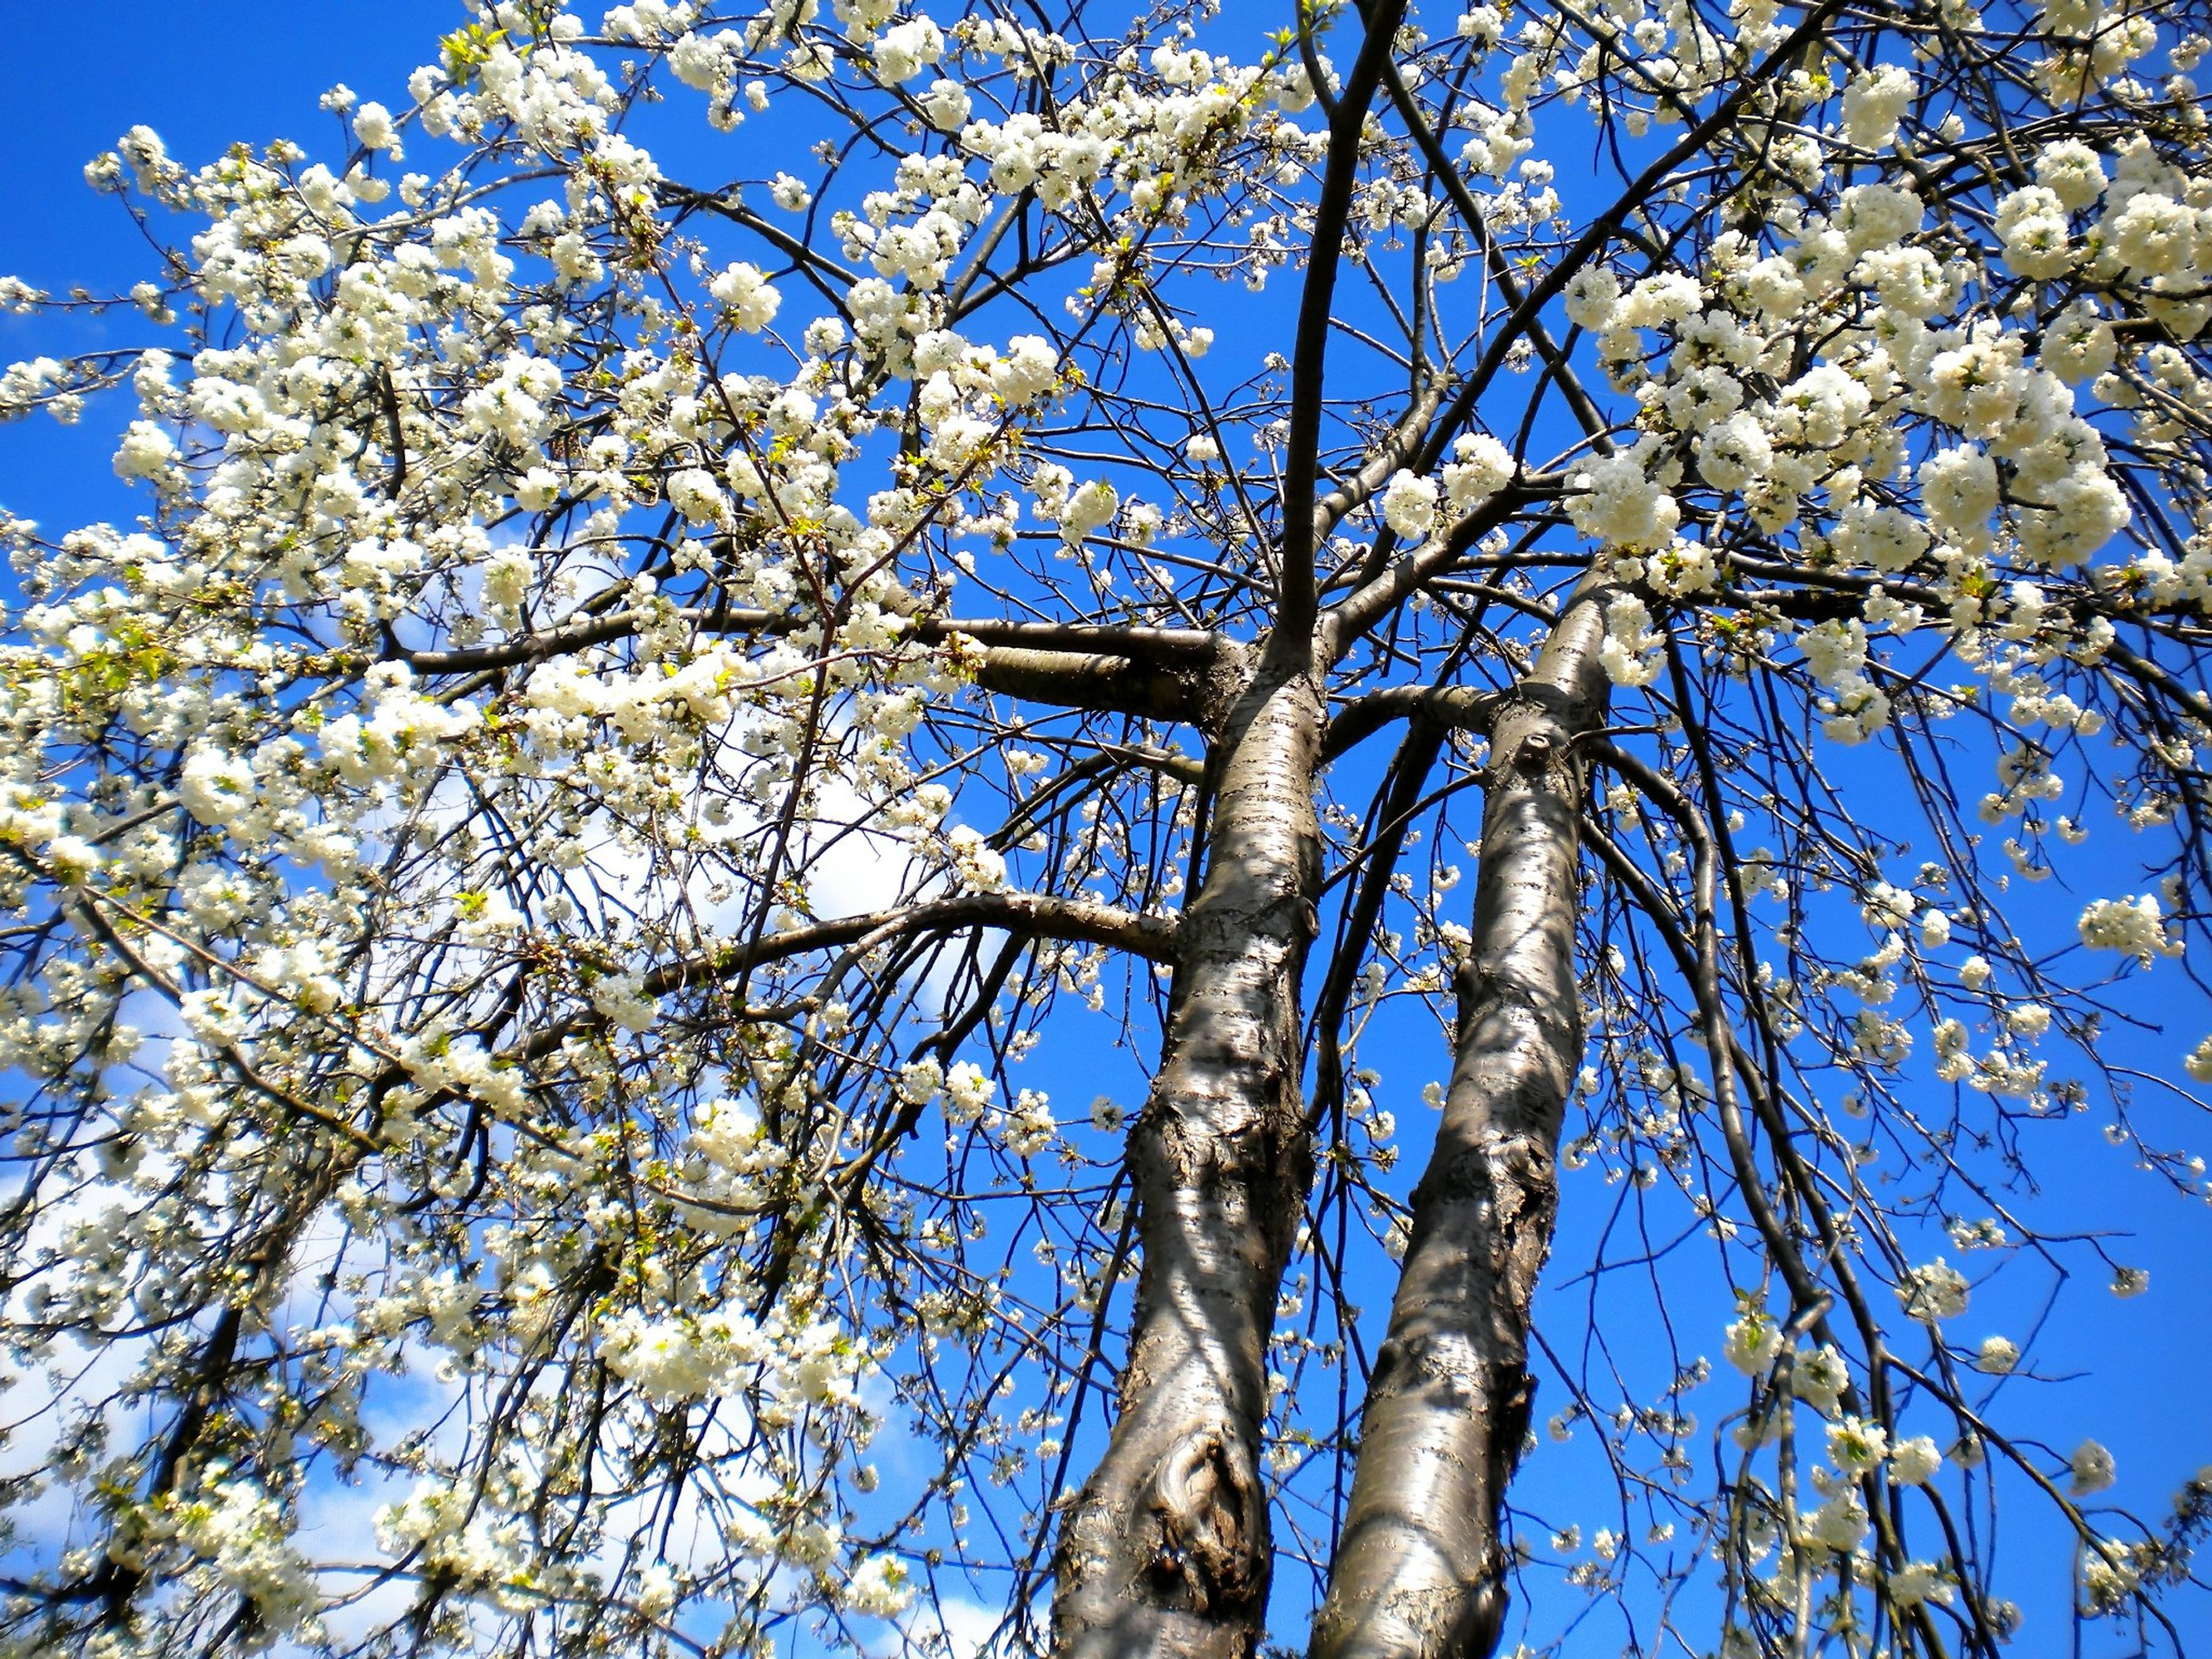 low angle view, flower, tree, branch, growth, freshness, clear sky, blue, blossom, fragility, cherry blossom, beauty in nature, nature, cherry tree, sky, blooming, springtime, in bloom, day, sunlight